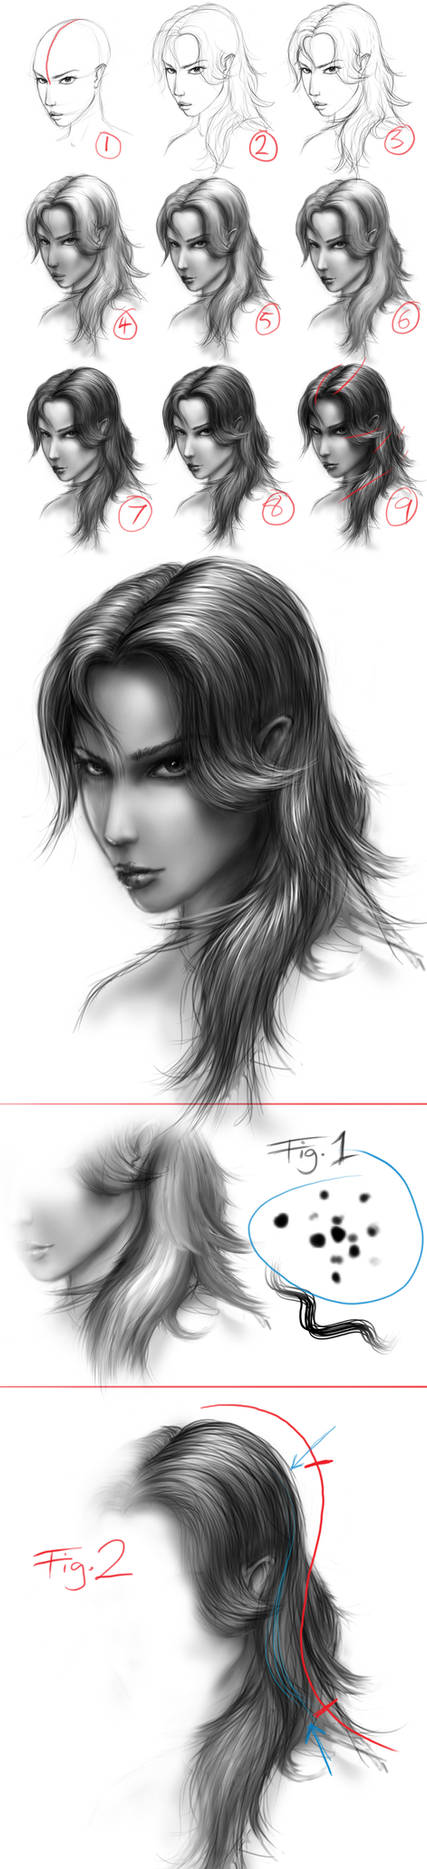 hair full tutorial by dypsomaniart